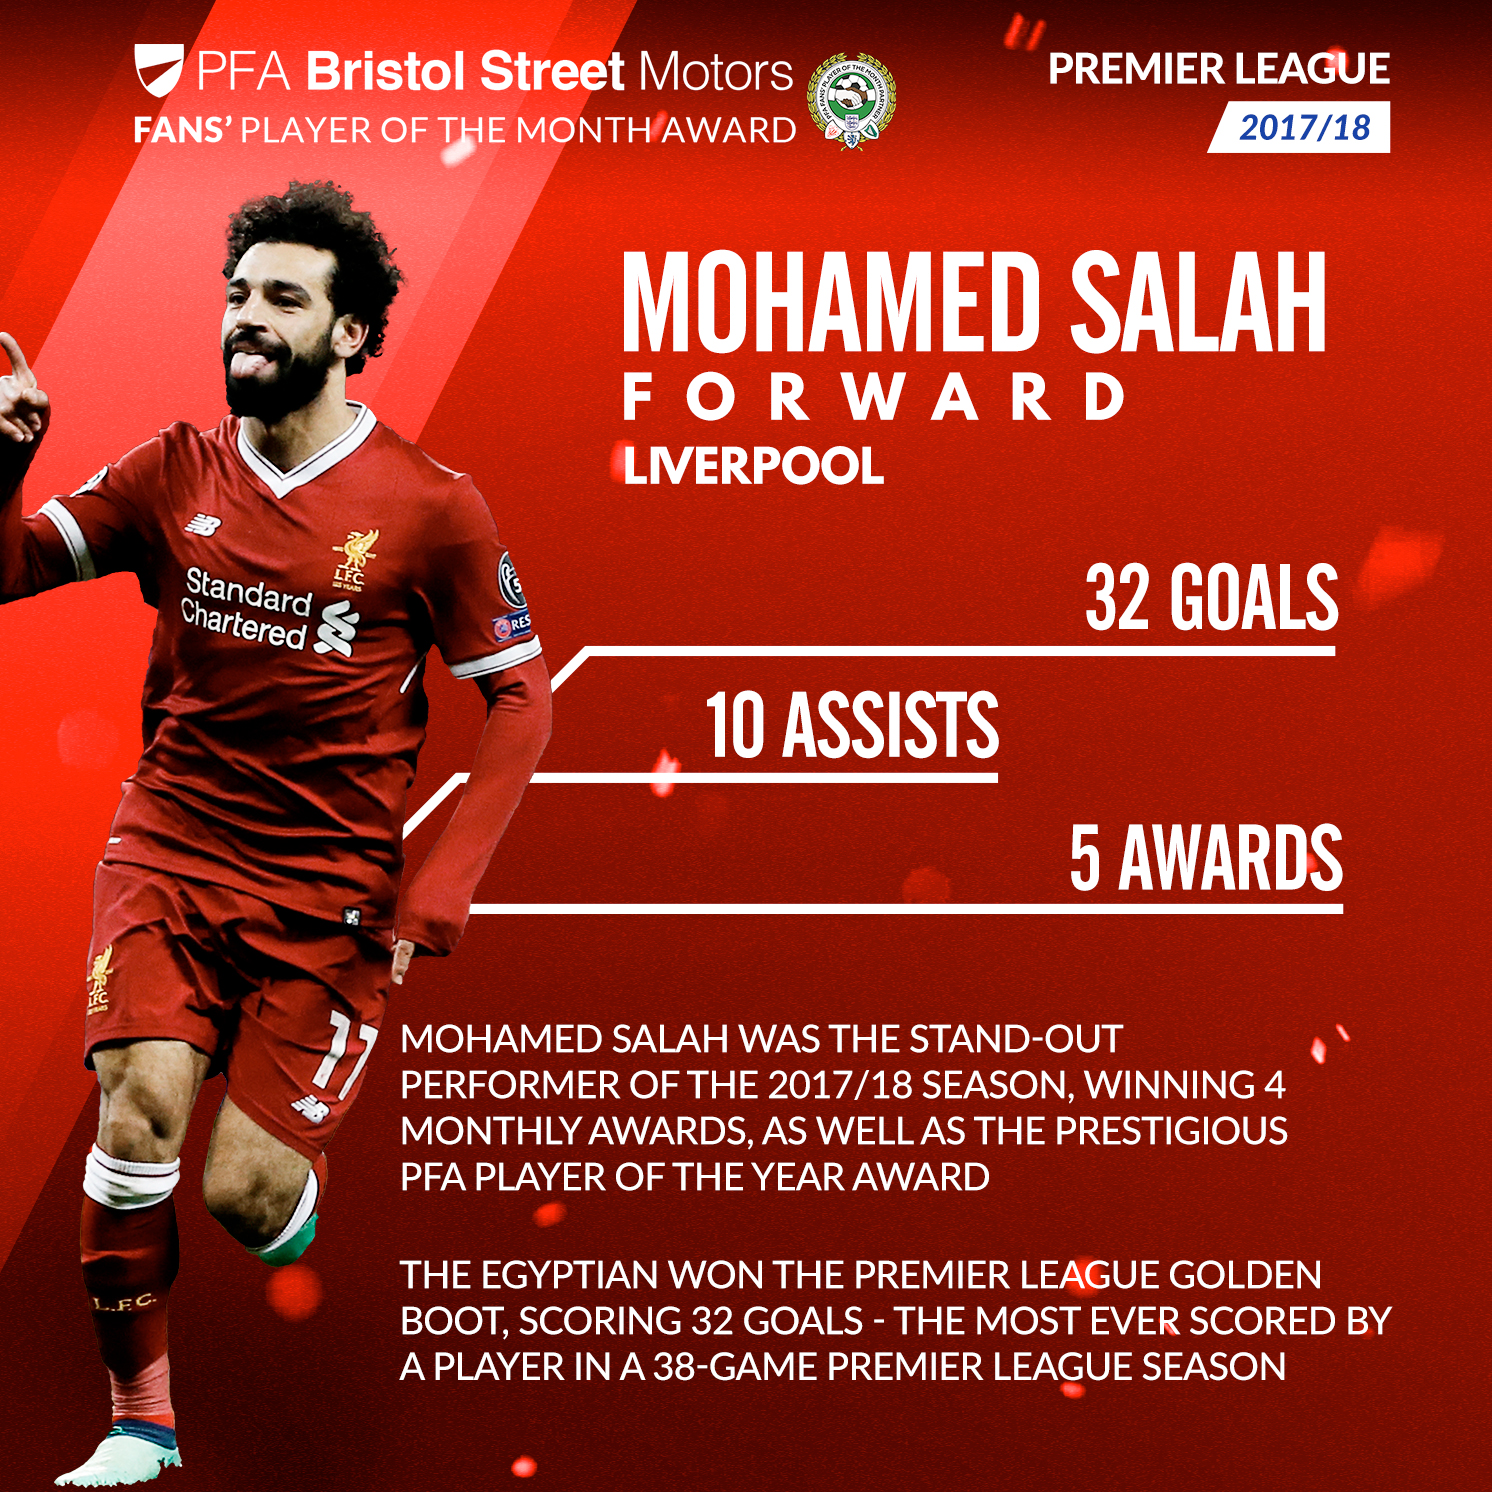 Mohamed Salah's stats from last season